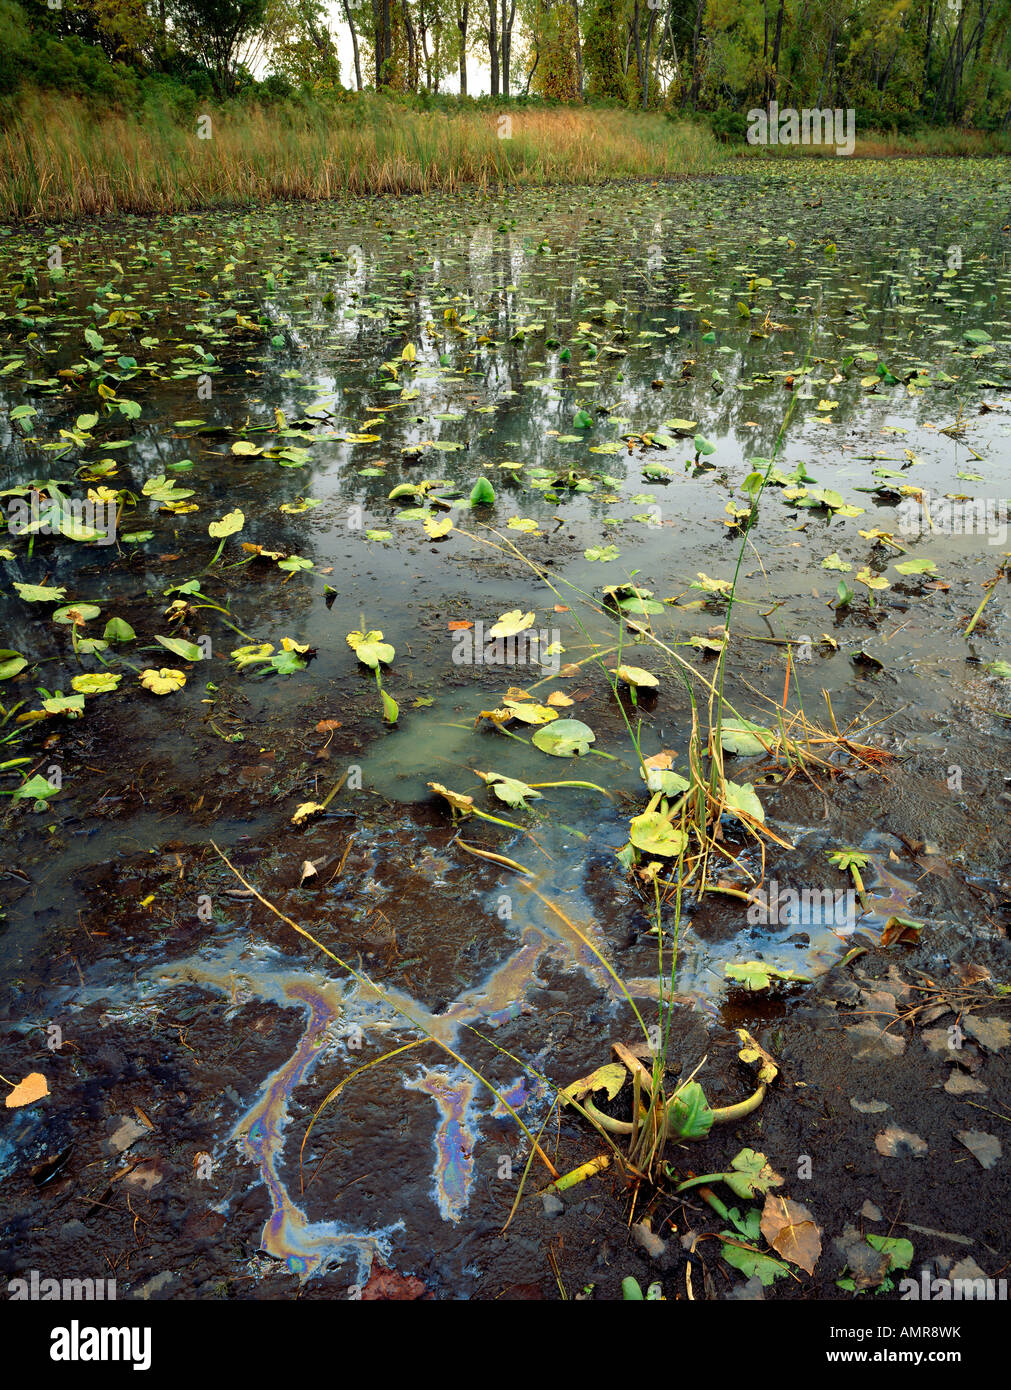 Water pollution that appears to be engine oil near horseshoe pond Presque Isle State Park Pennsylvania environment - Stock Image